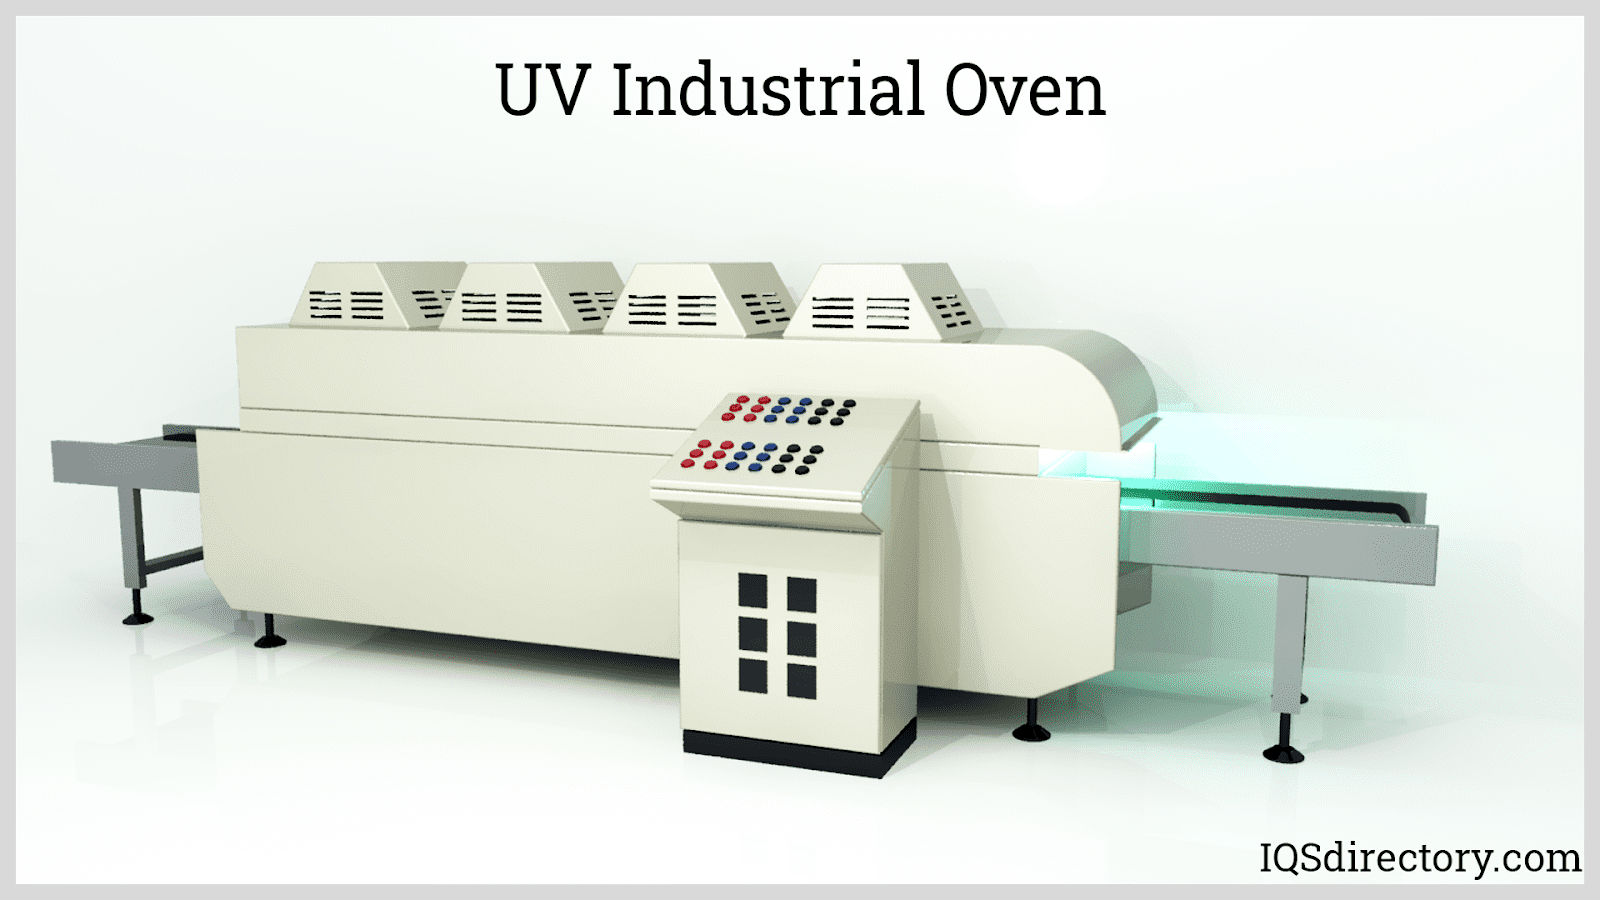 UV Industrial Oven